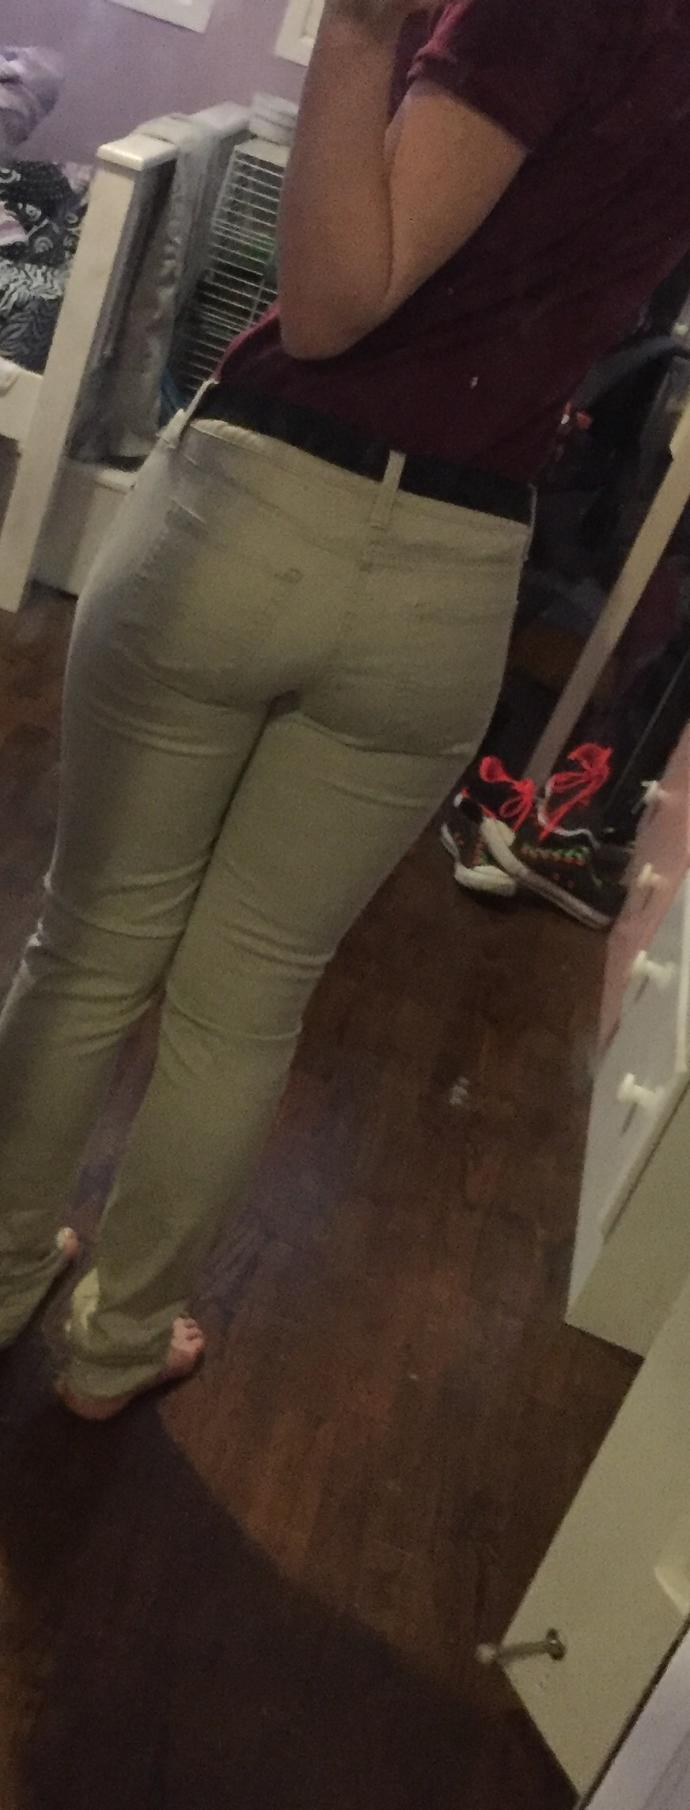 My butt look bad in this pants?